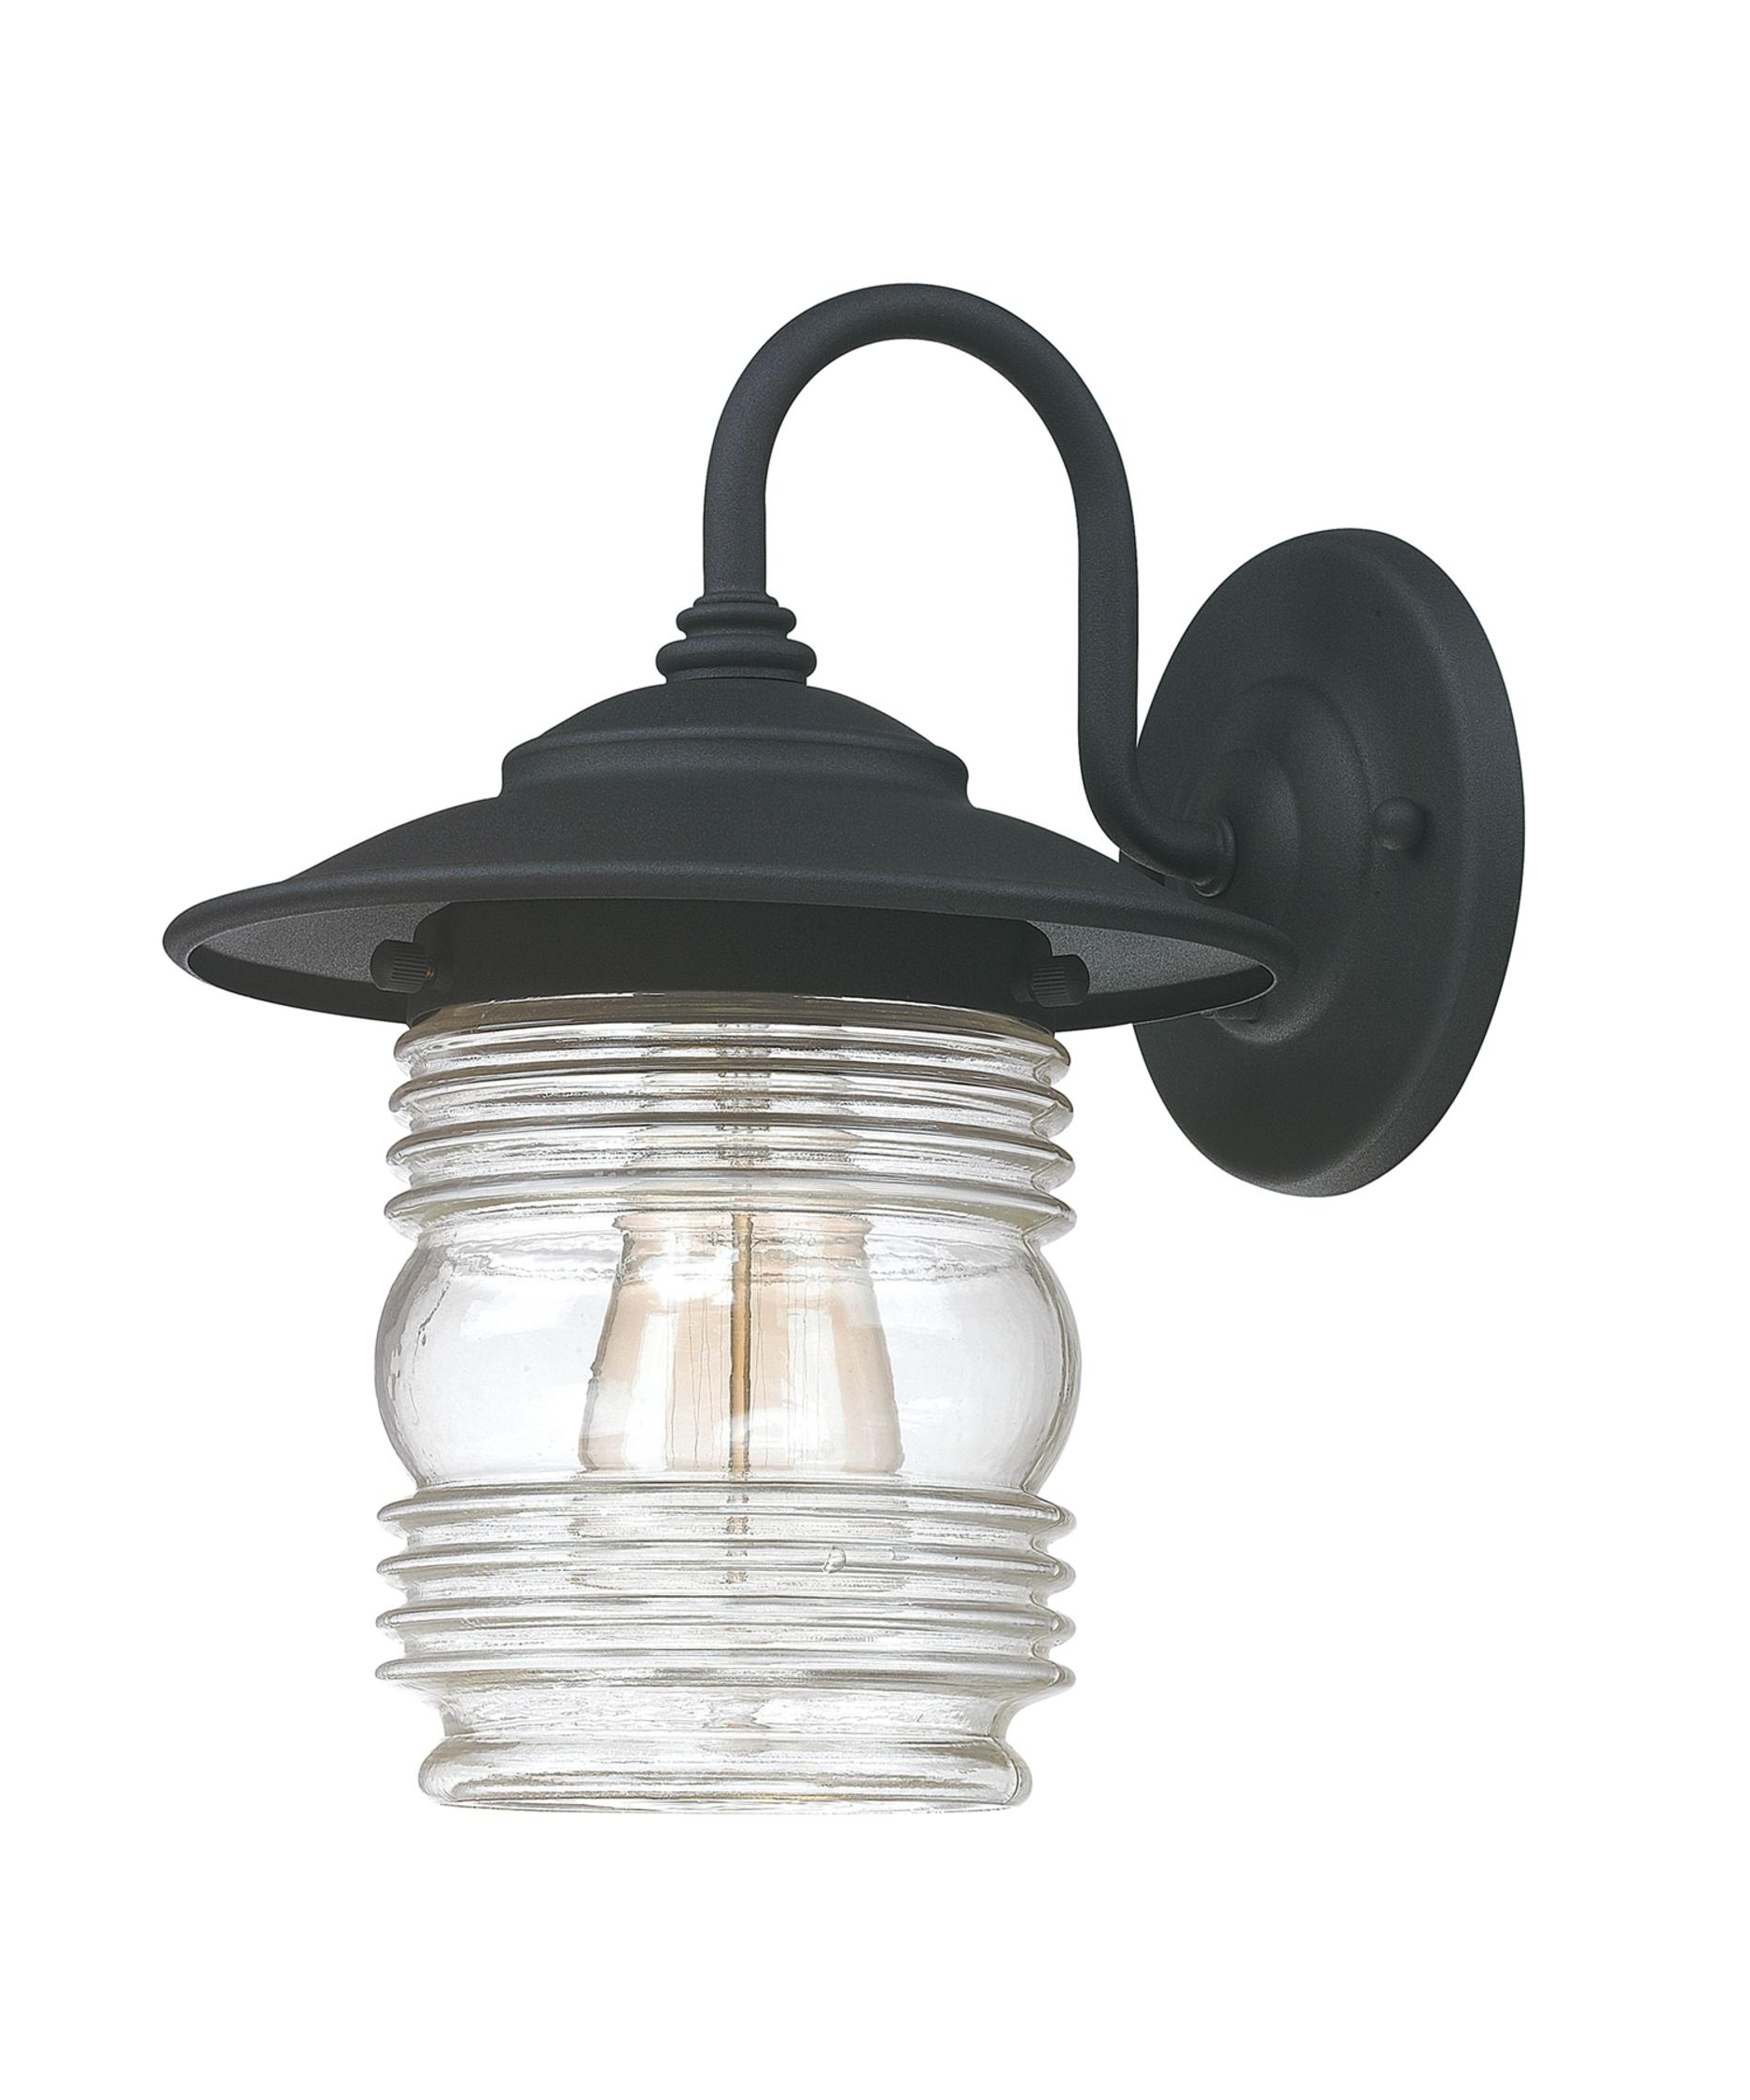 Capital Lighting 9671 Creekside 8 Inch Wide 1 Light Outdoor Wall Within Newest Retro Outdoor Wall Lighting (View 20 of 20)